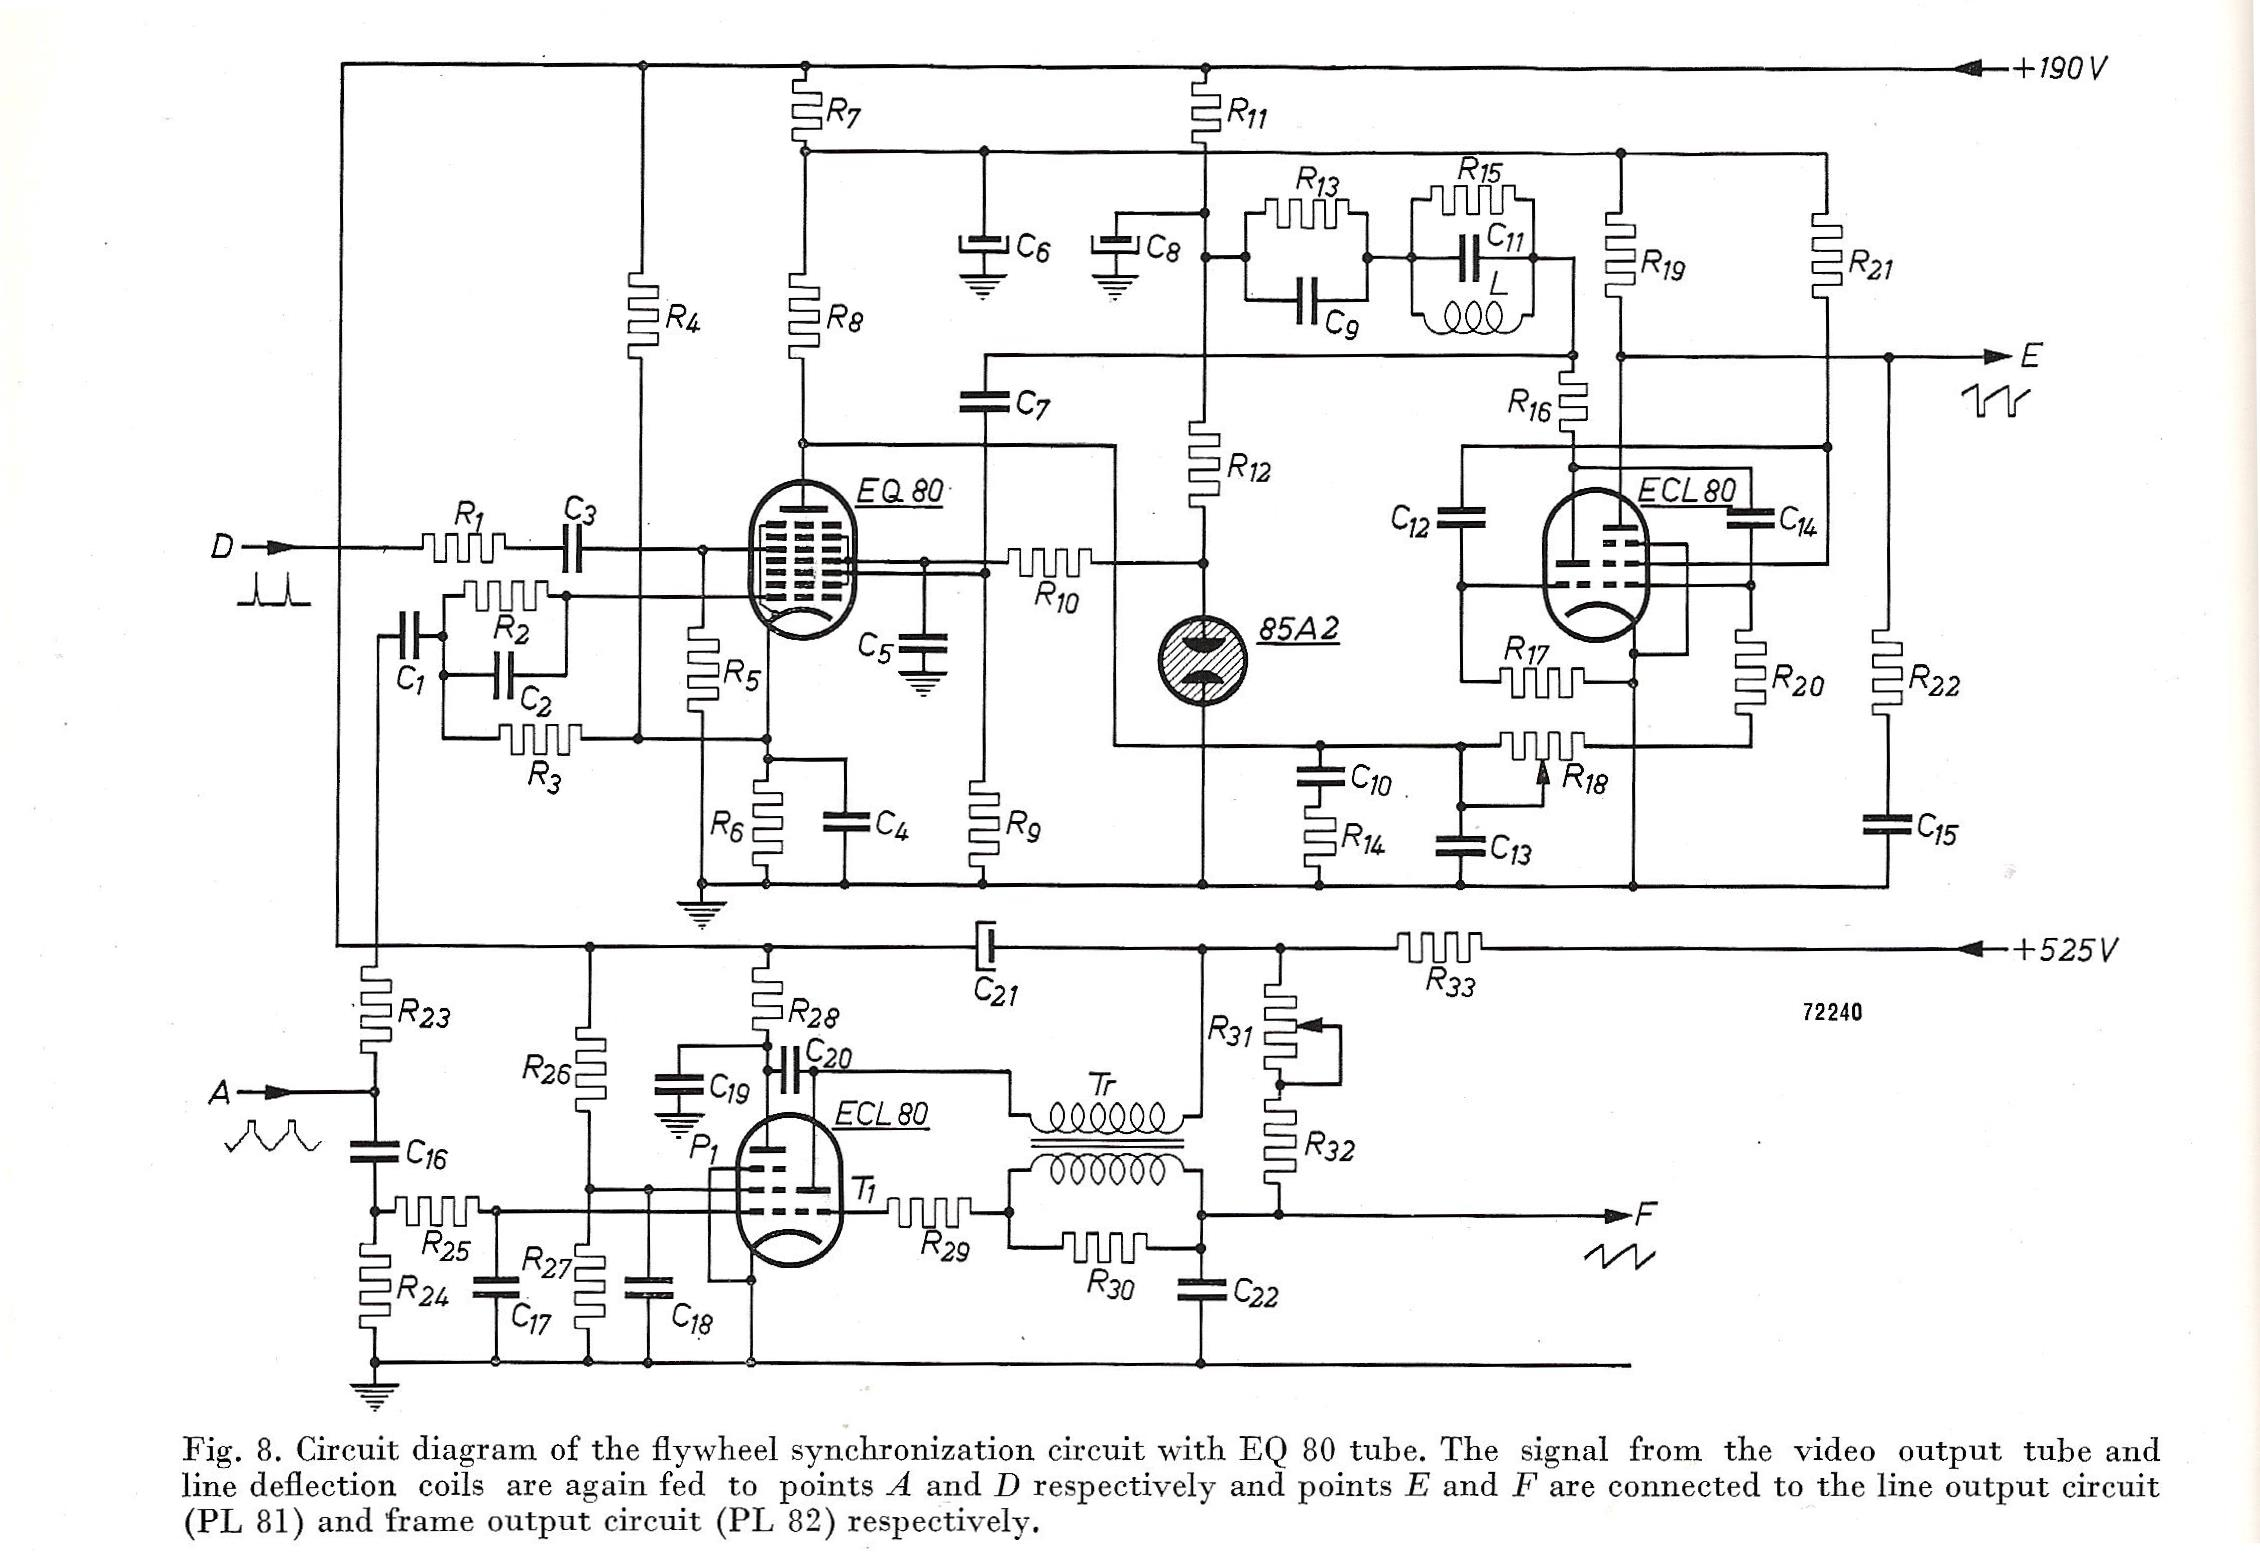 EAB_1952_EQ80_Flywheel_synchronization_3 horstmann centaurplus c17 wiring diagram schematic circuit diagram horstmann centaurplus c17 wiring diagram at nearapp.co